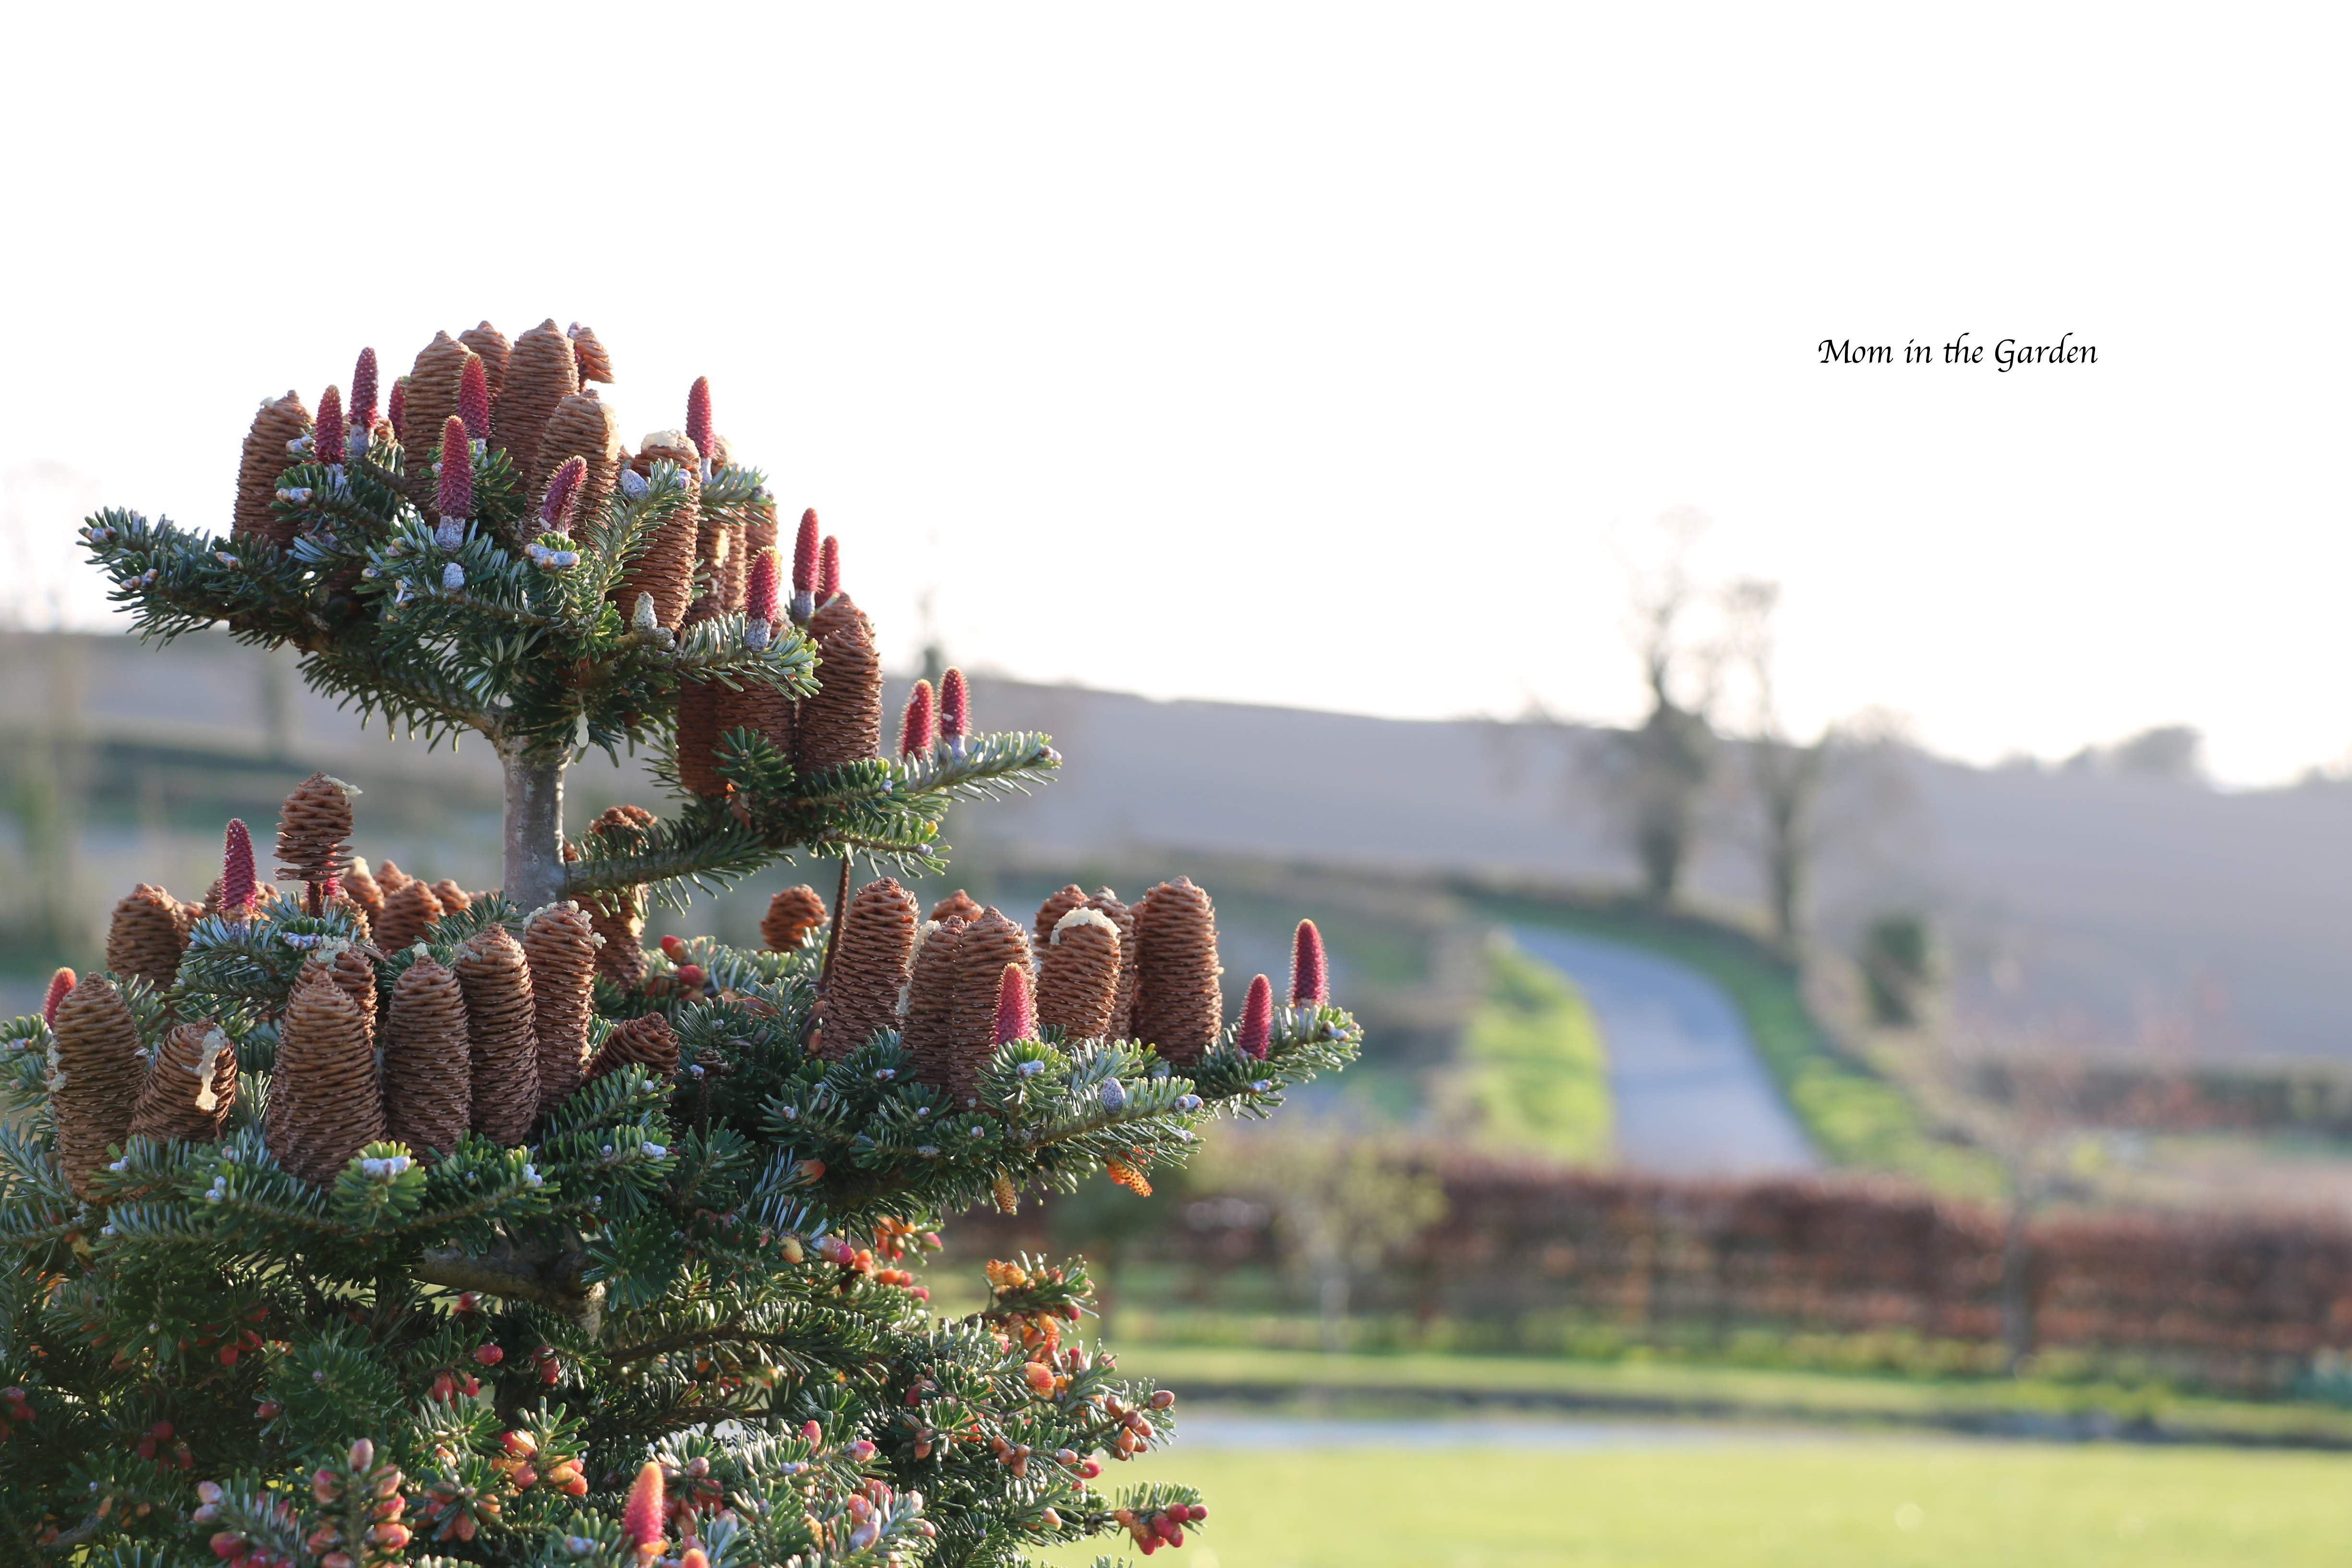 Abies Koreana + pine cones March 31st